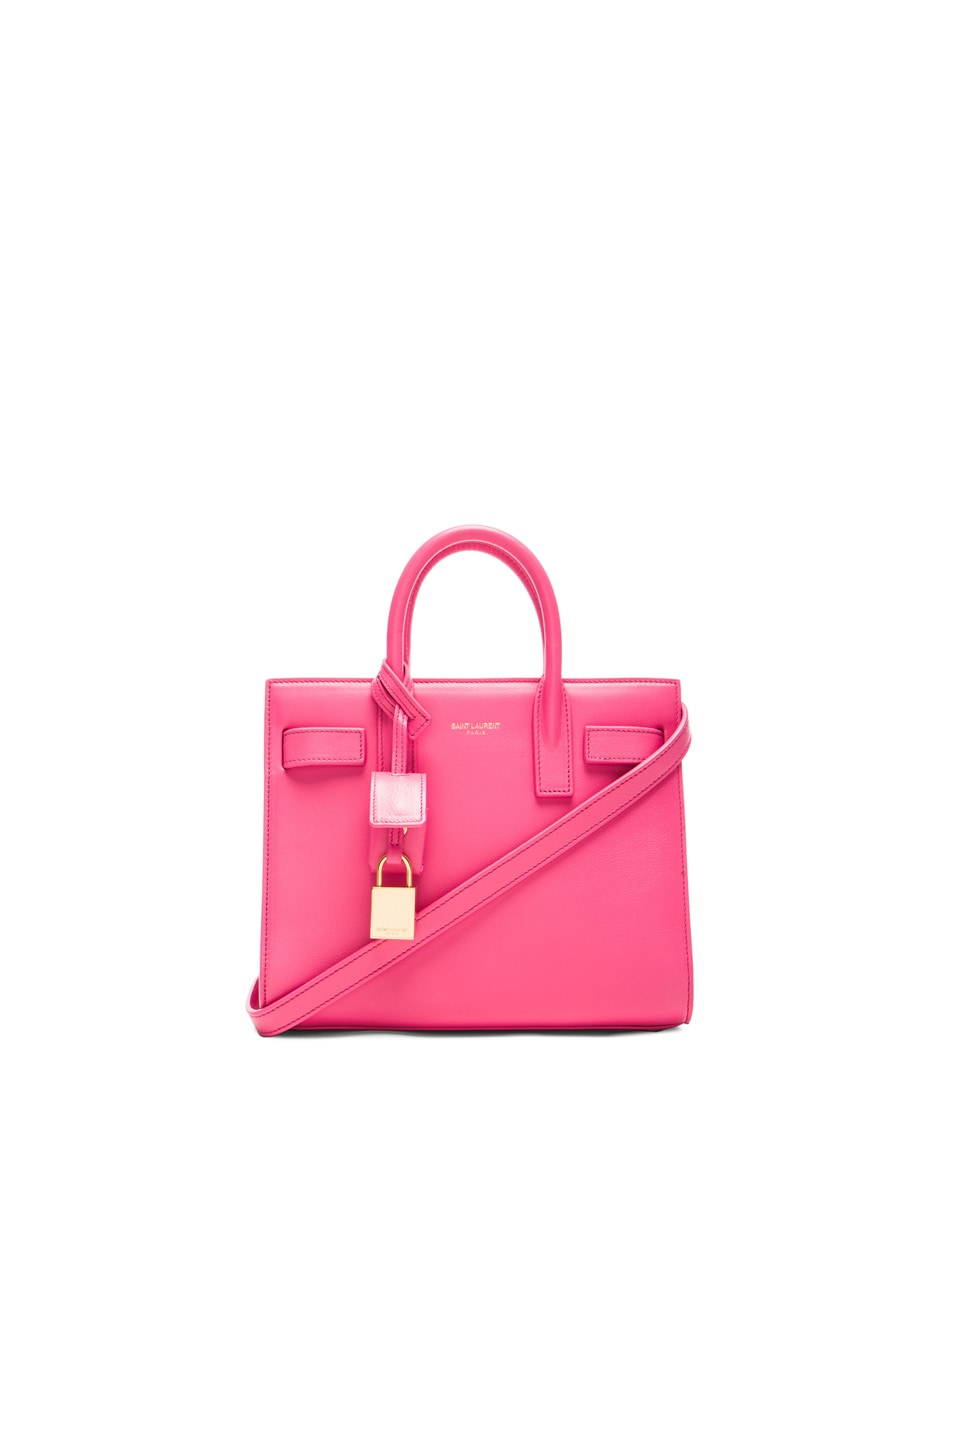 Image 1 of Saint Laurent Nano Sac De Jour Carryall Bag in Lipstick Pink